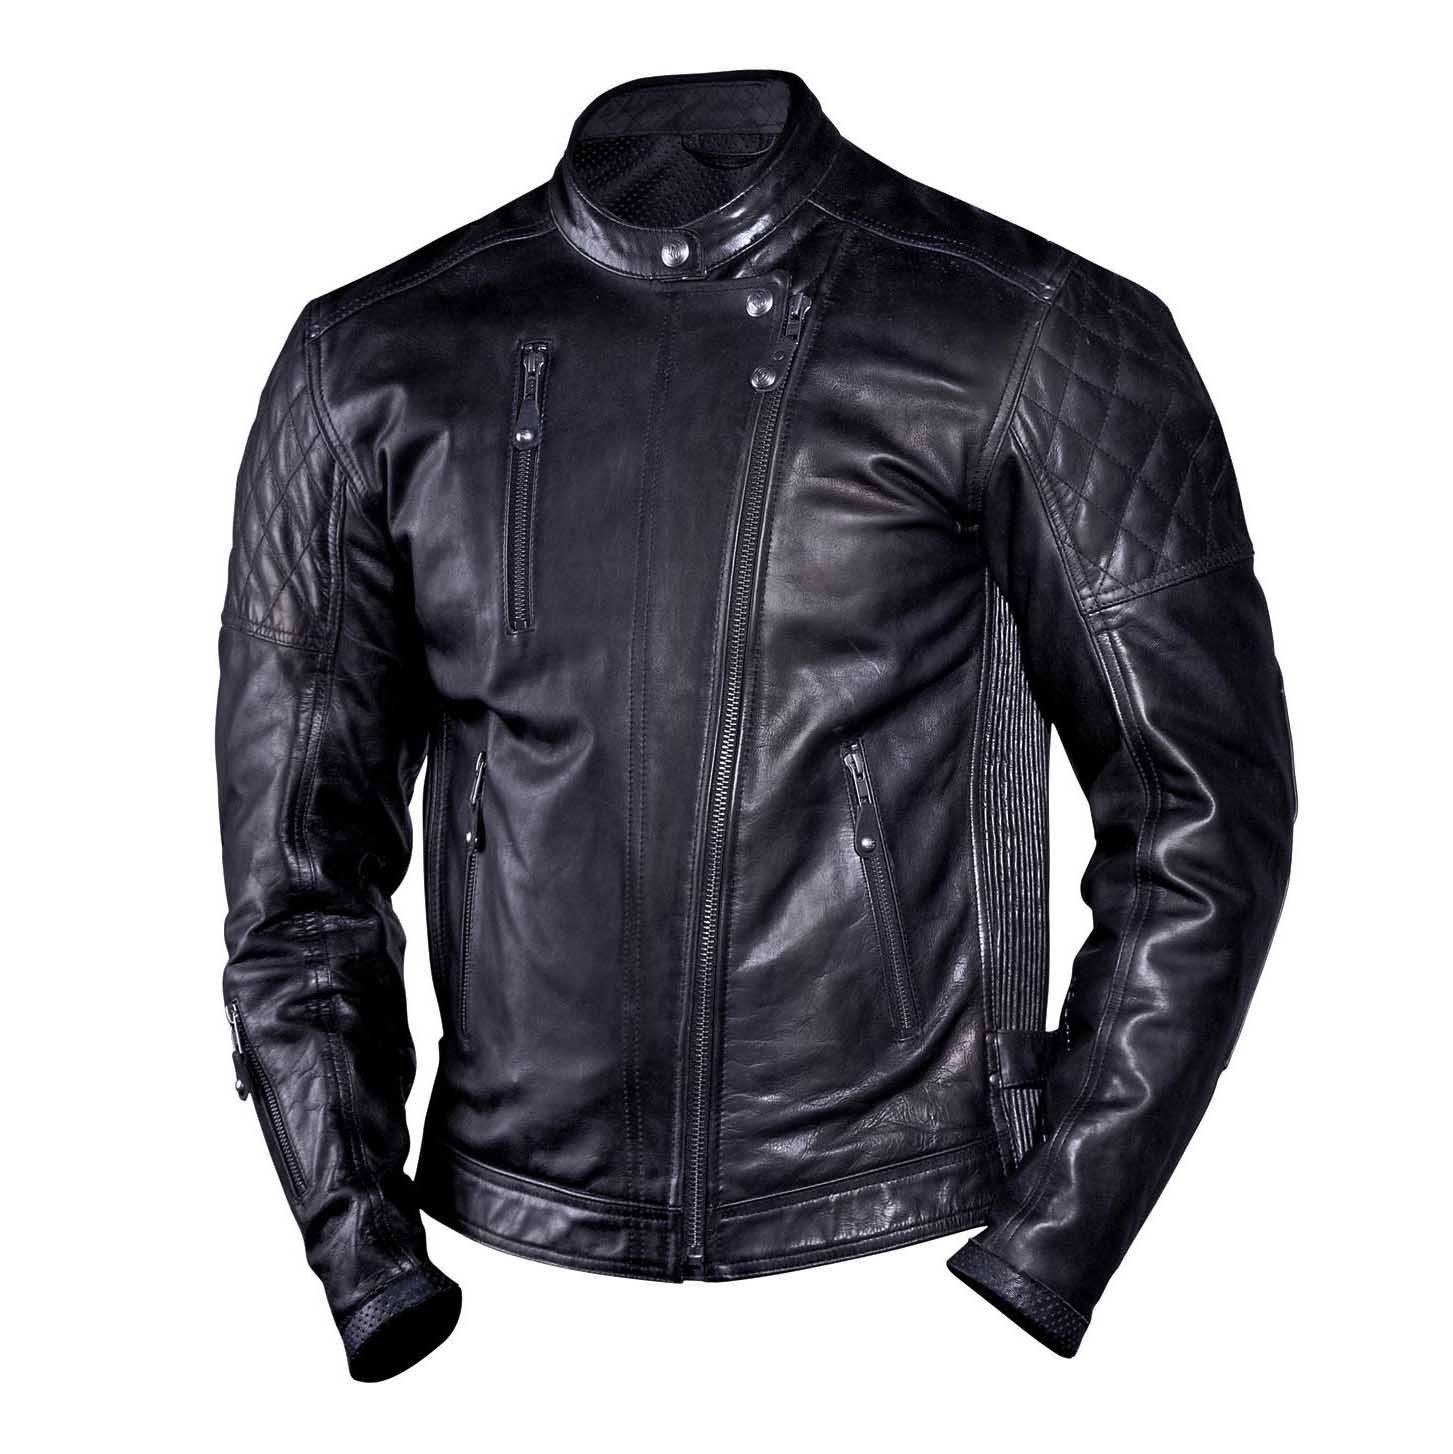 Roland Sands Design Clash Leather Motorcycle Jacket Revival Cycles Custom Leather Jackets Roland Sands Design Jacket Leather Jacket Black [ 1454 x 1453 Pixel ]